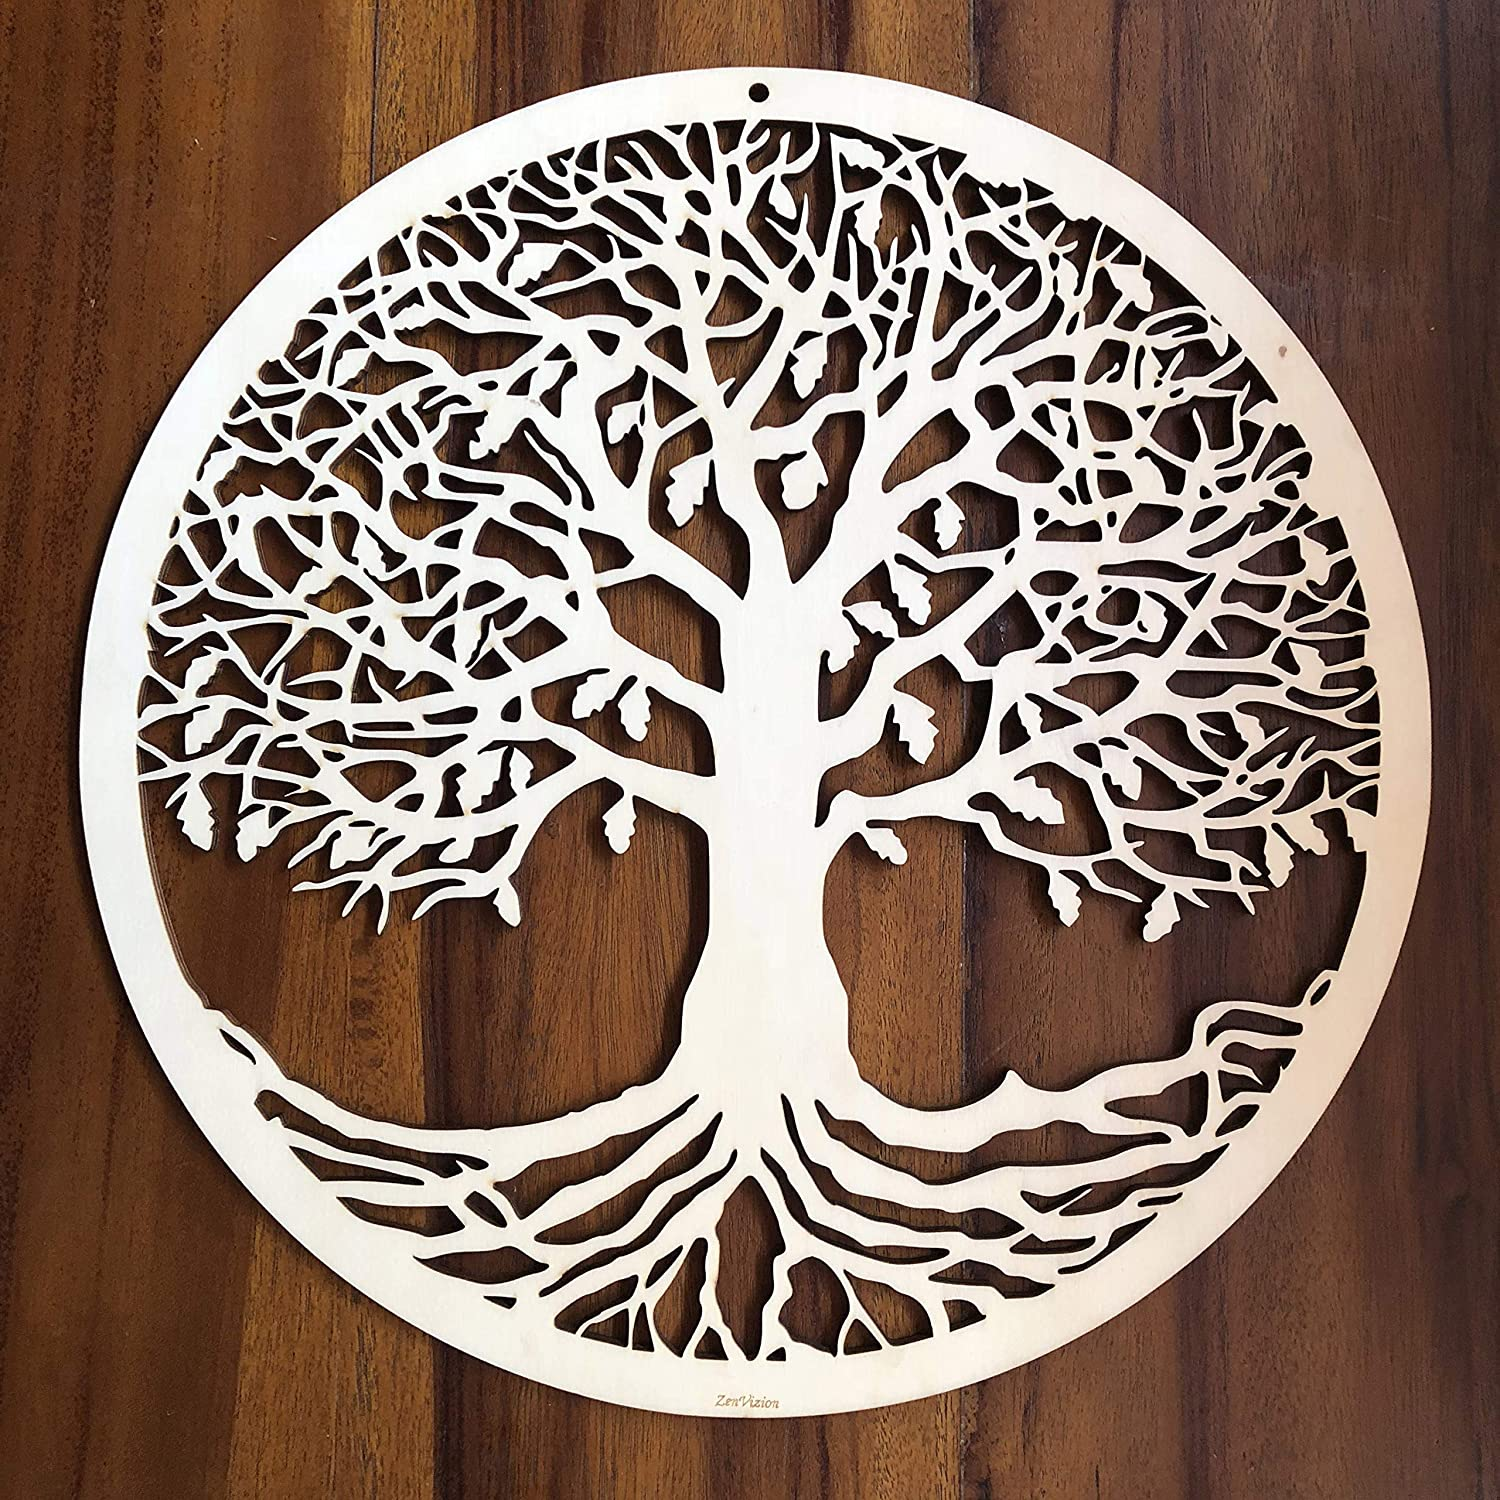 "ZenVizion 13.5"" Tree of Life Wall Art, Sacred Geometry Wall Art, Wooden Wall Art Decor, Yoga Wall Art Hanging, Laser Cut Artwork, Wall Sculpture Symbol, Gift Purpose"